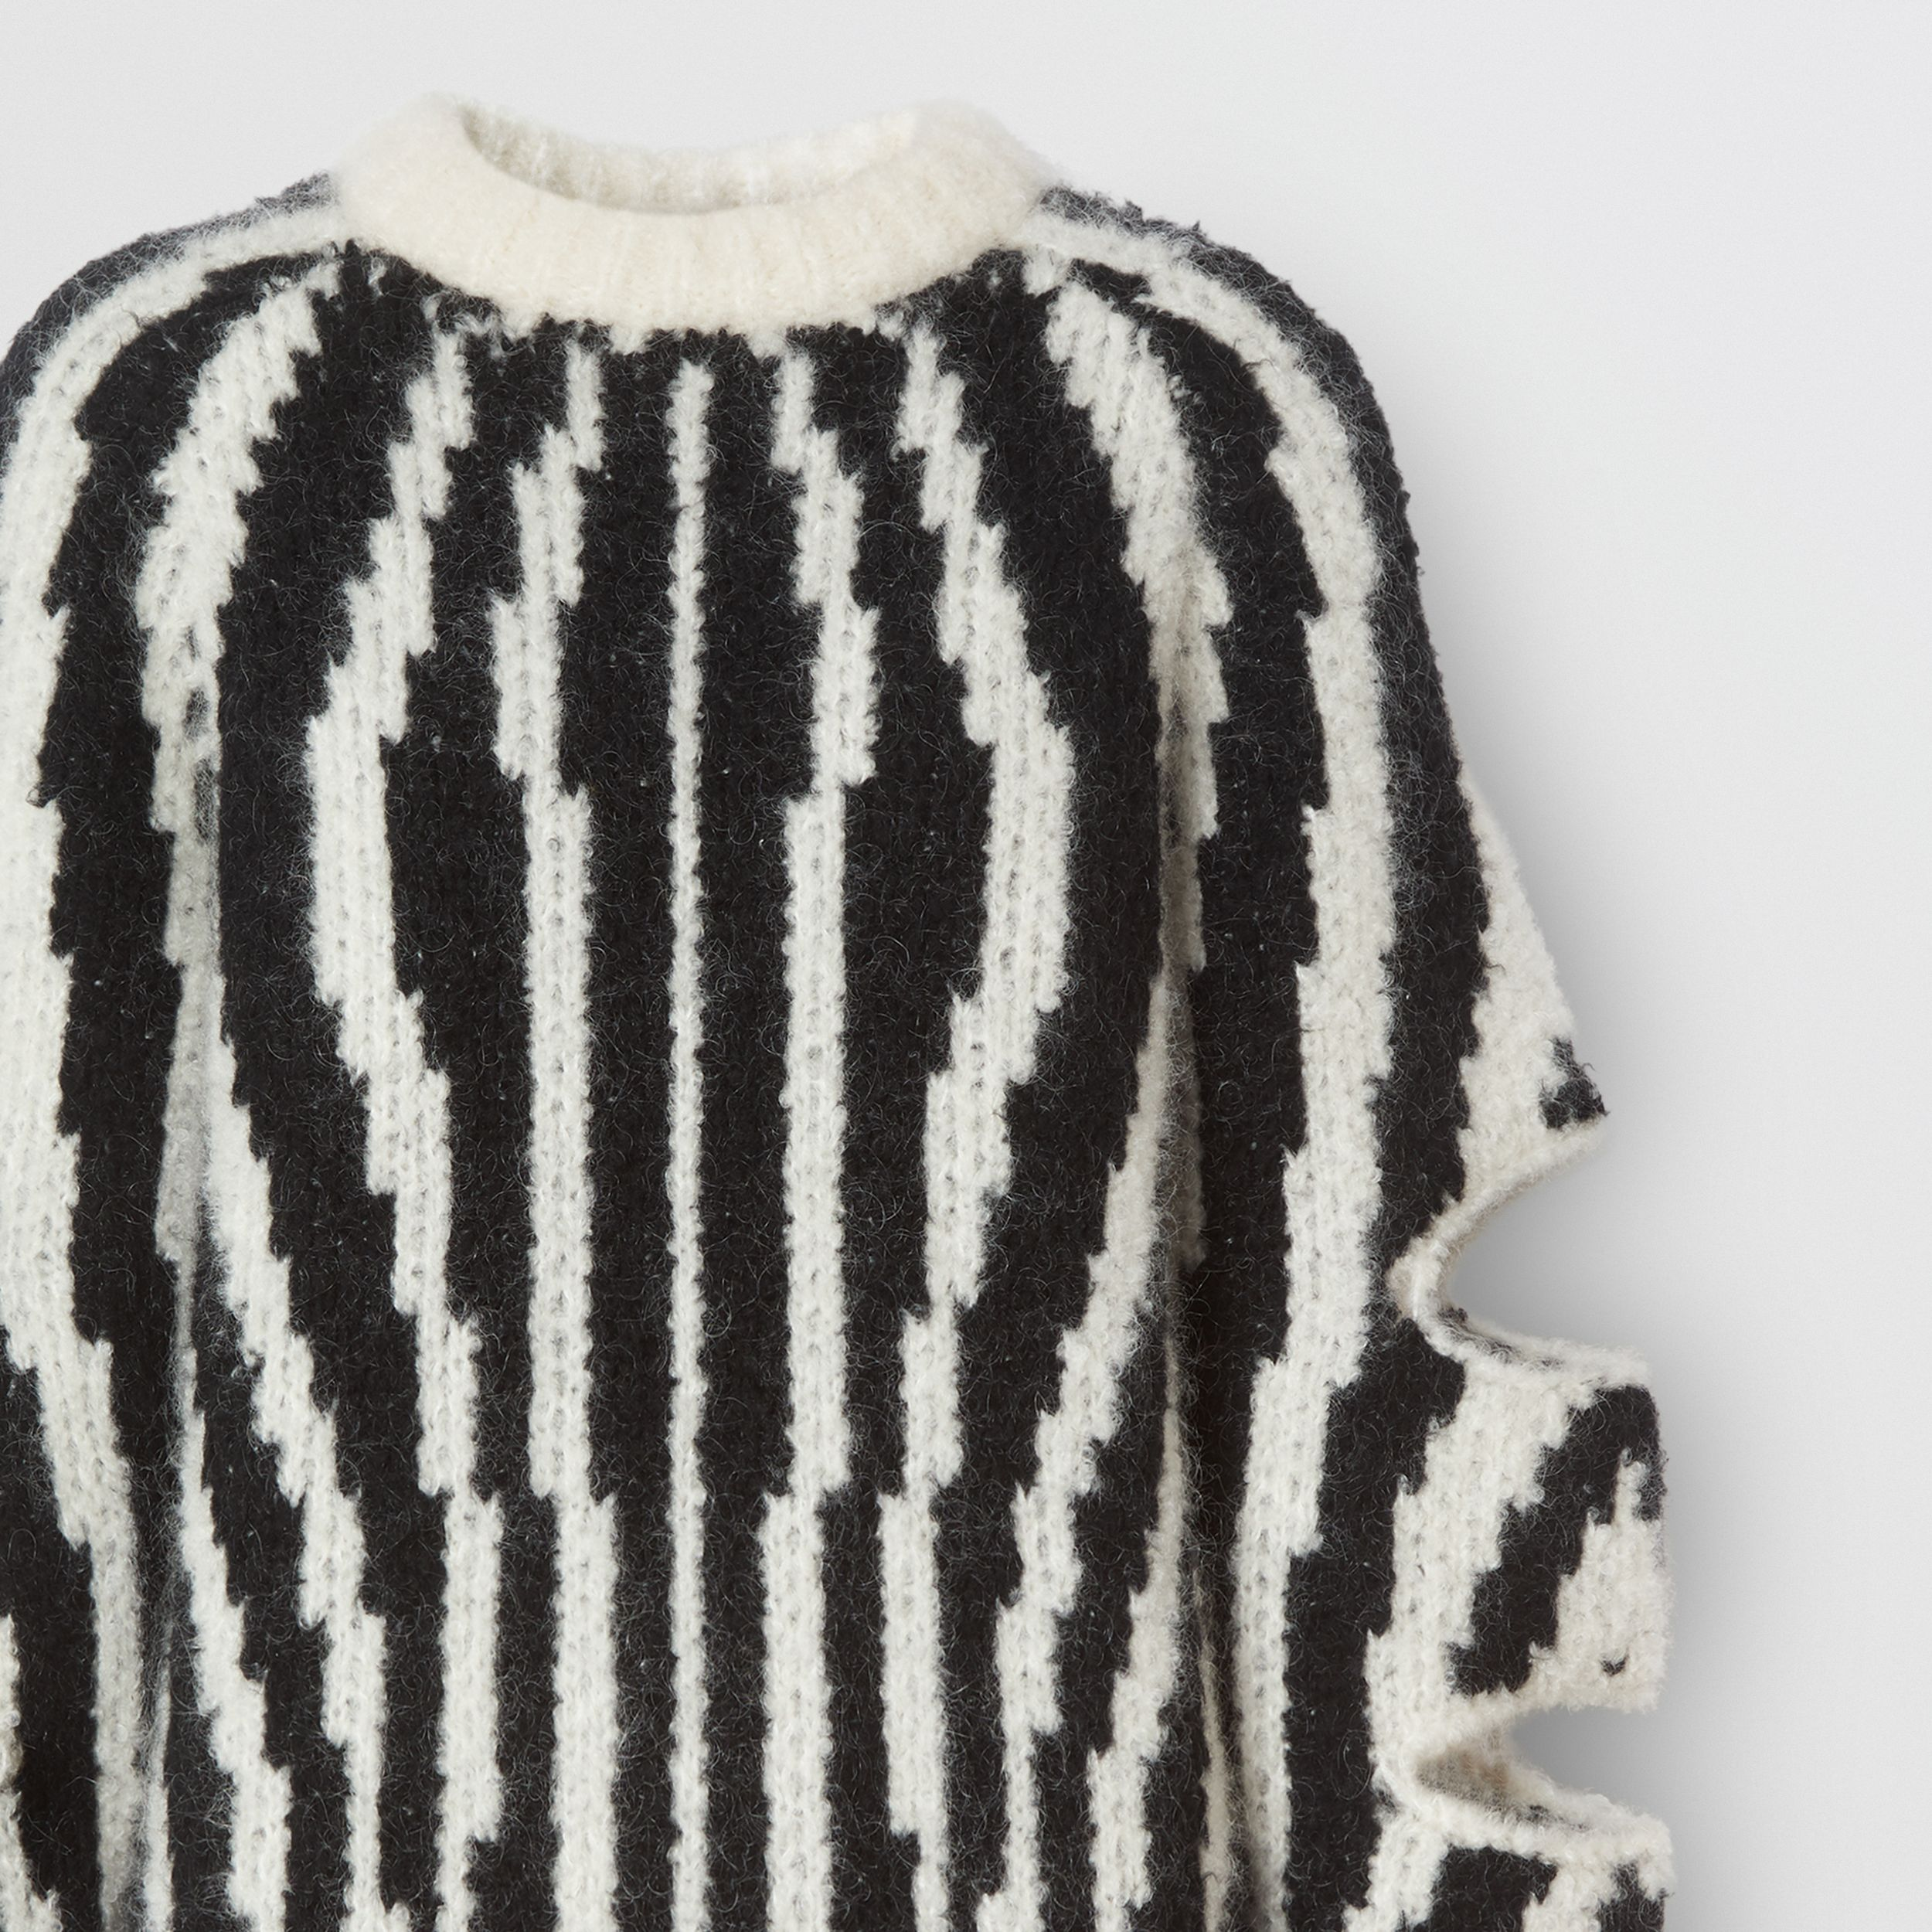 Cut-out Sleeve Wool Mohair Blend Jacquard Sweater | Burberry - 3